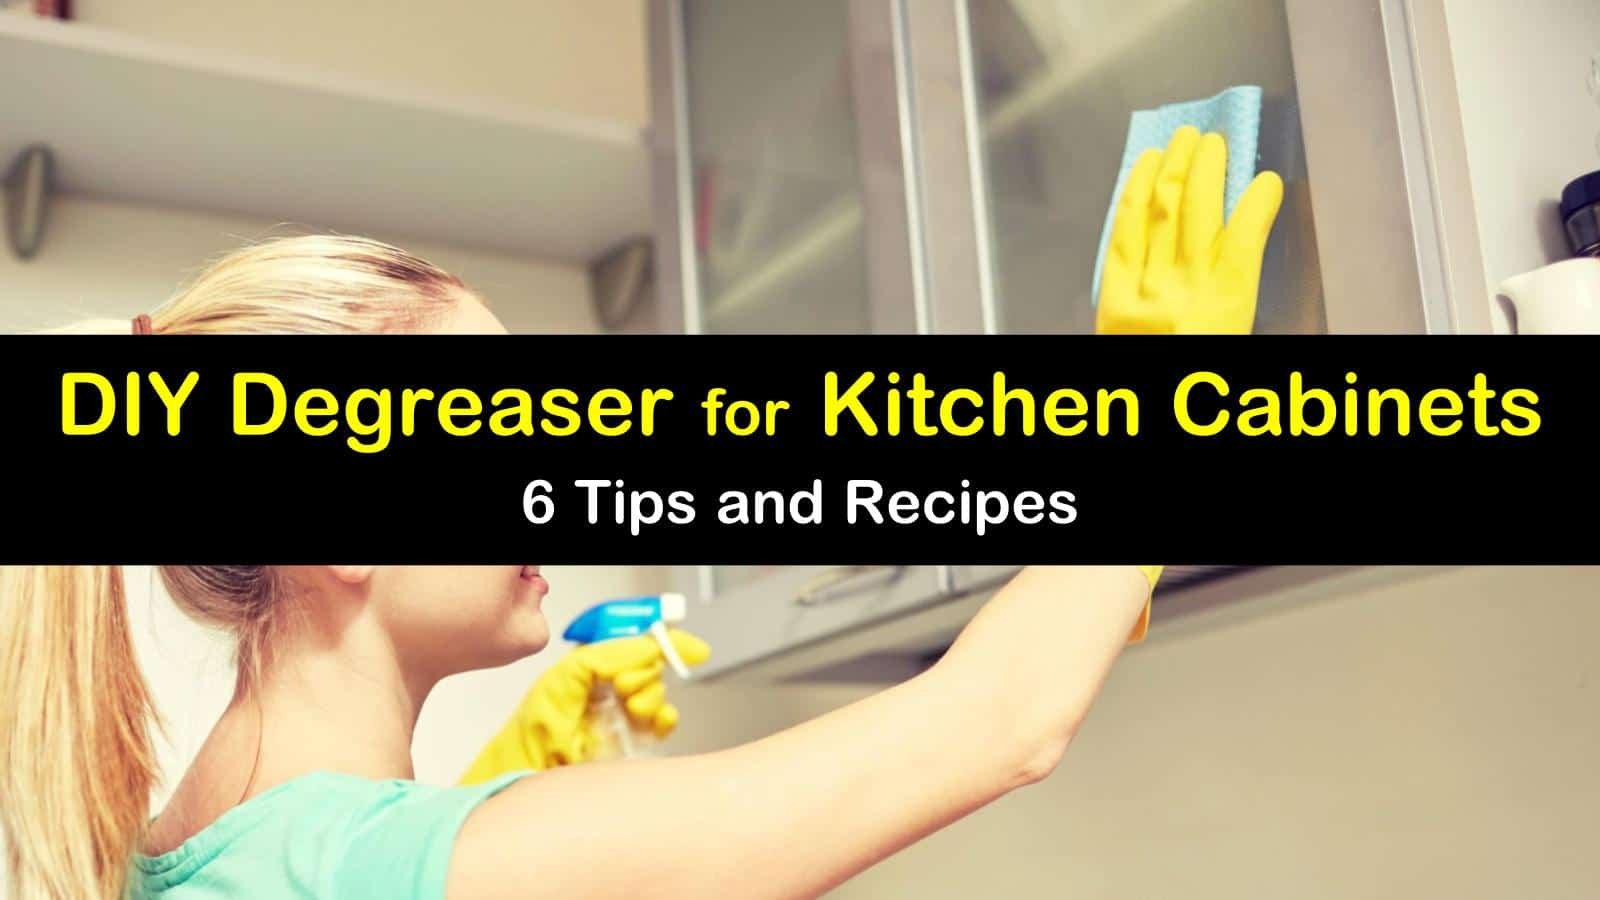 degreaser for kitchen cabinets titleimg1